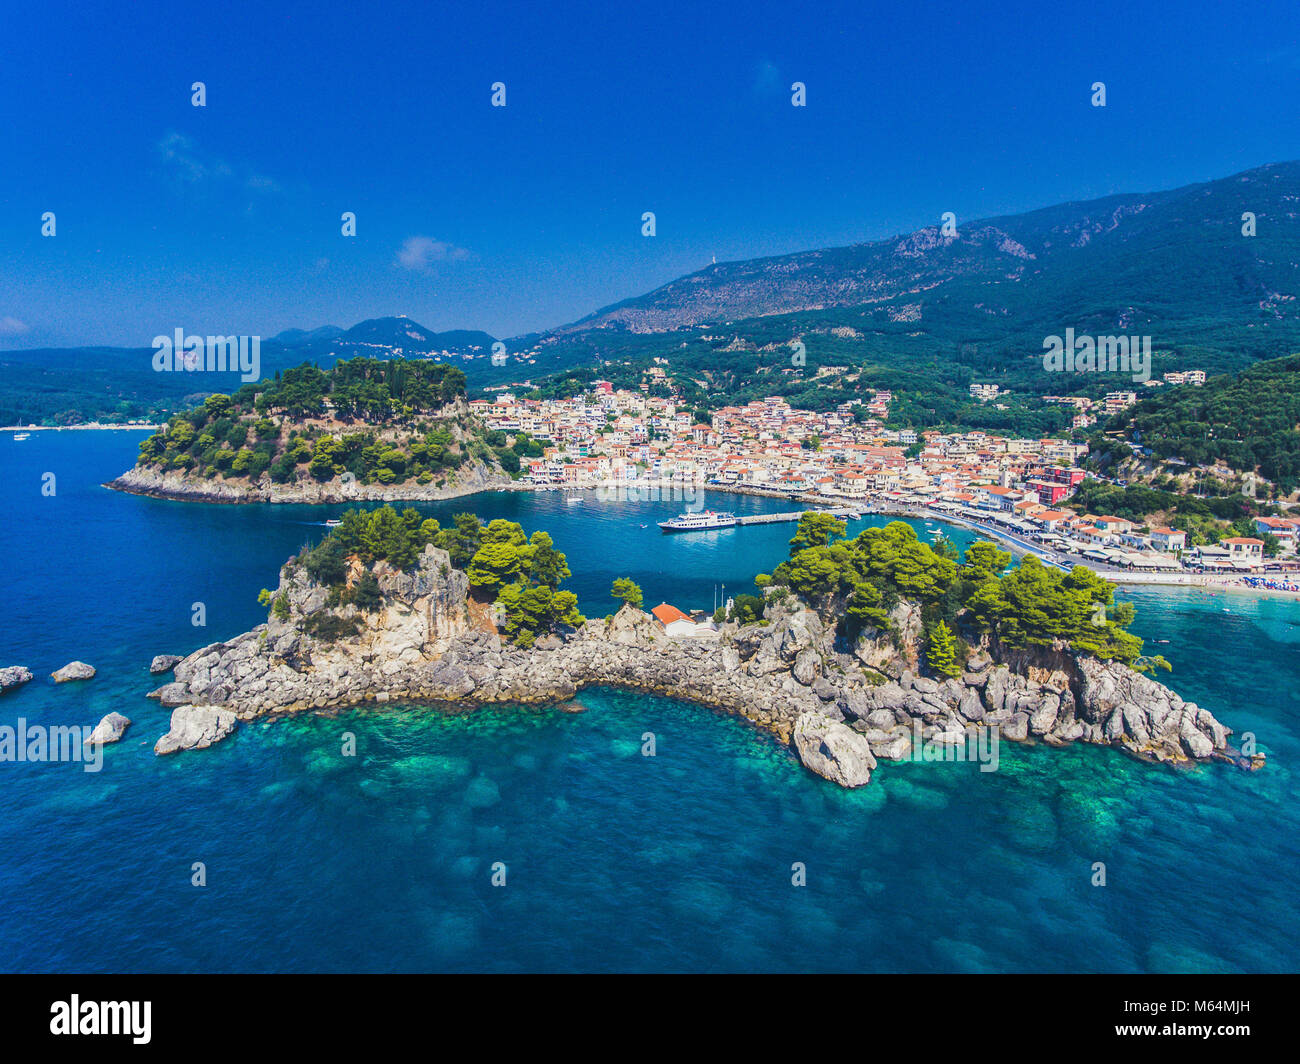 Parga and Panagia Island aerial view. Important tourist destination on the east coast of Greece. Stock Photo